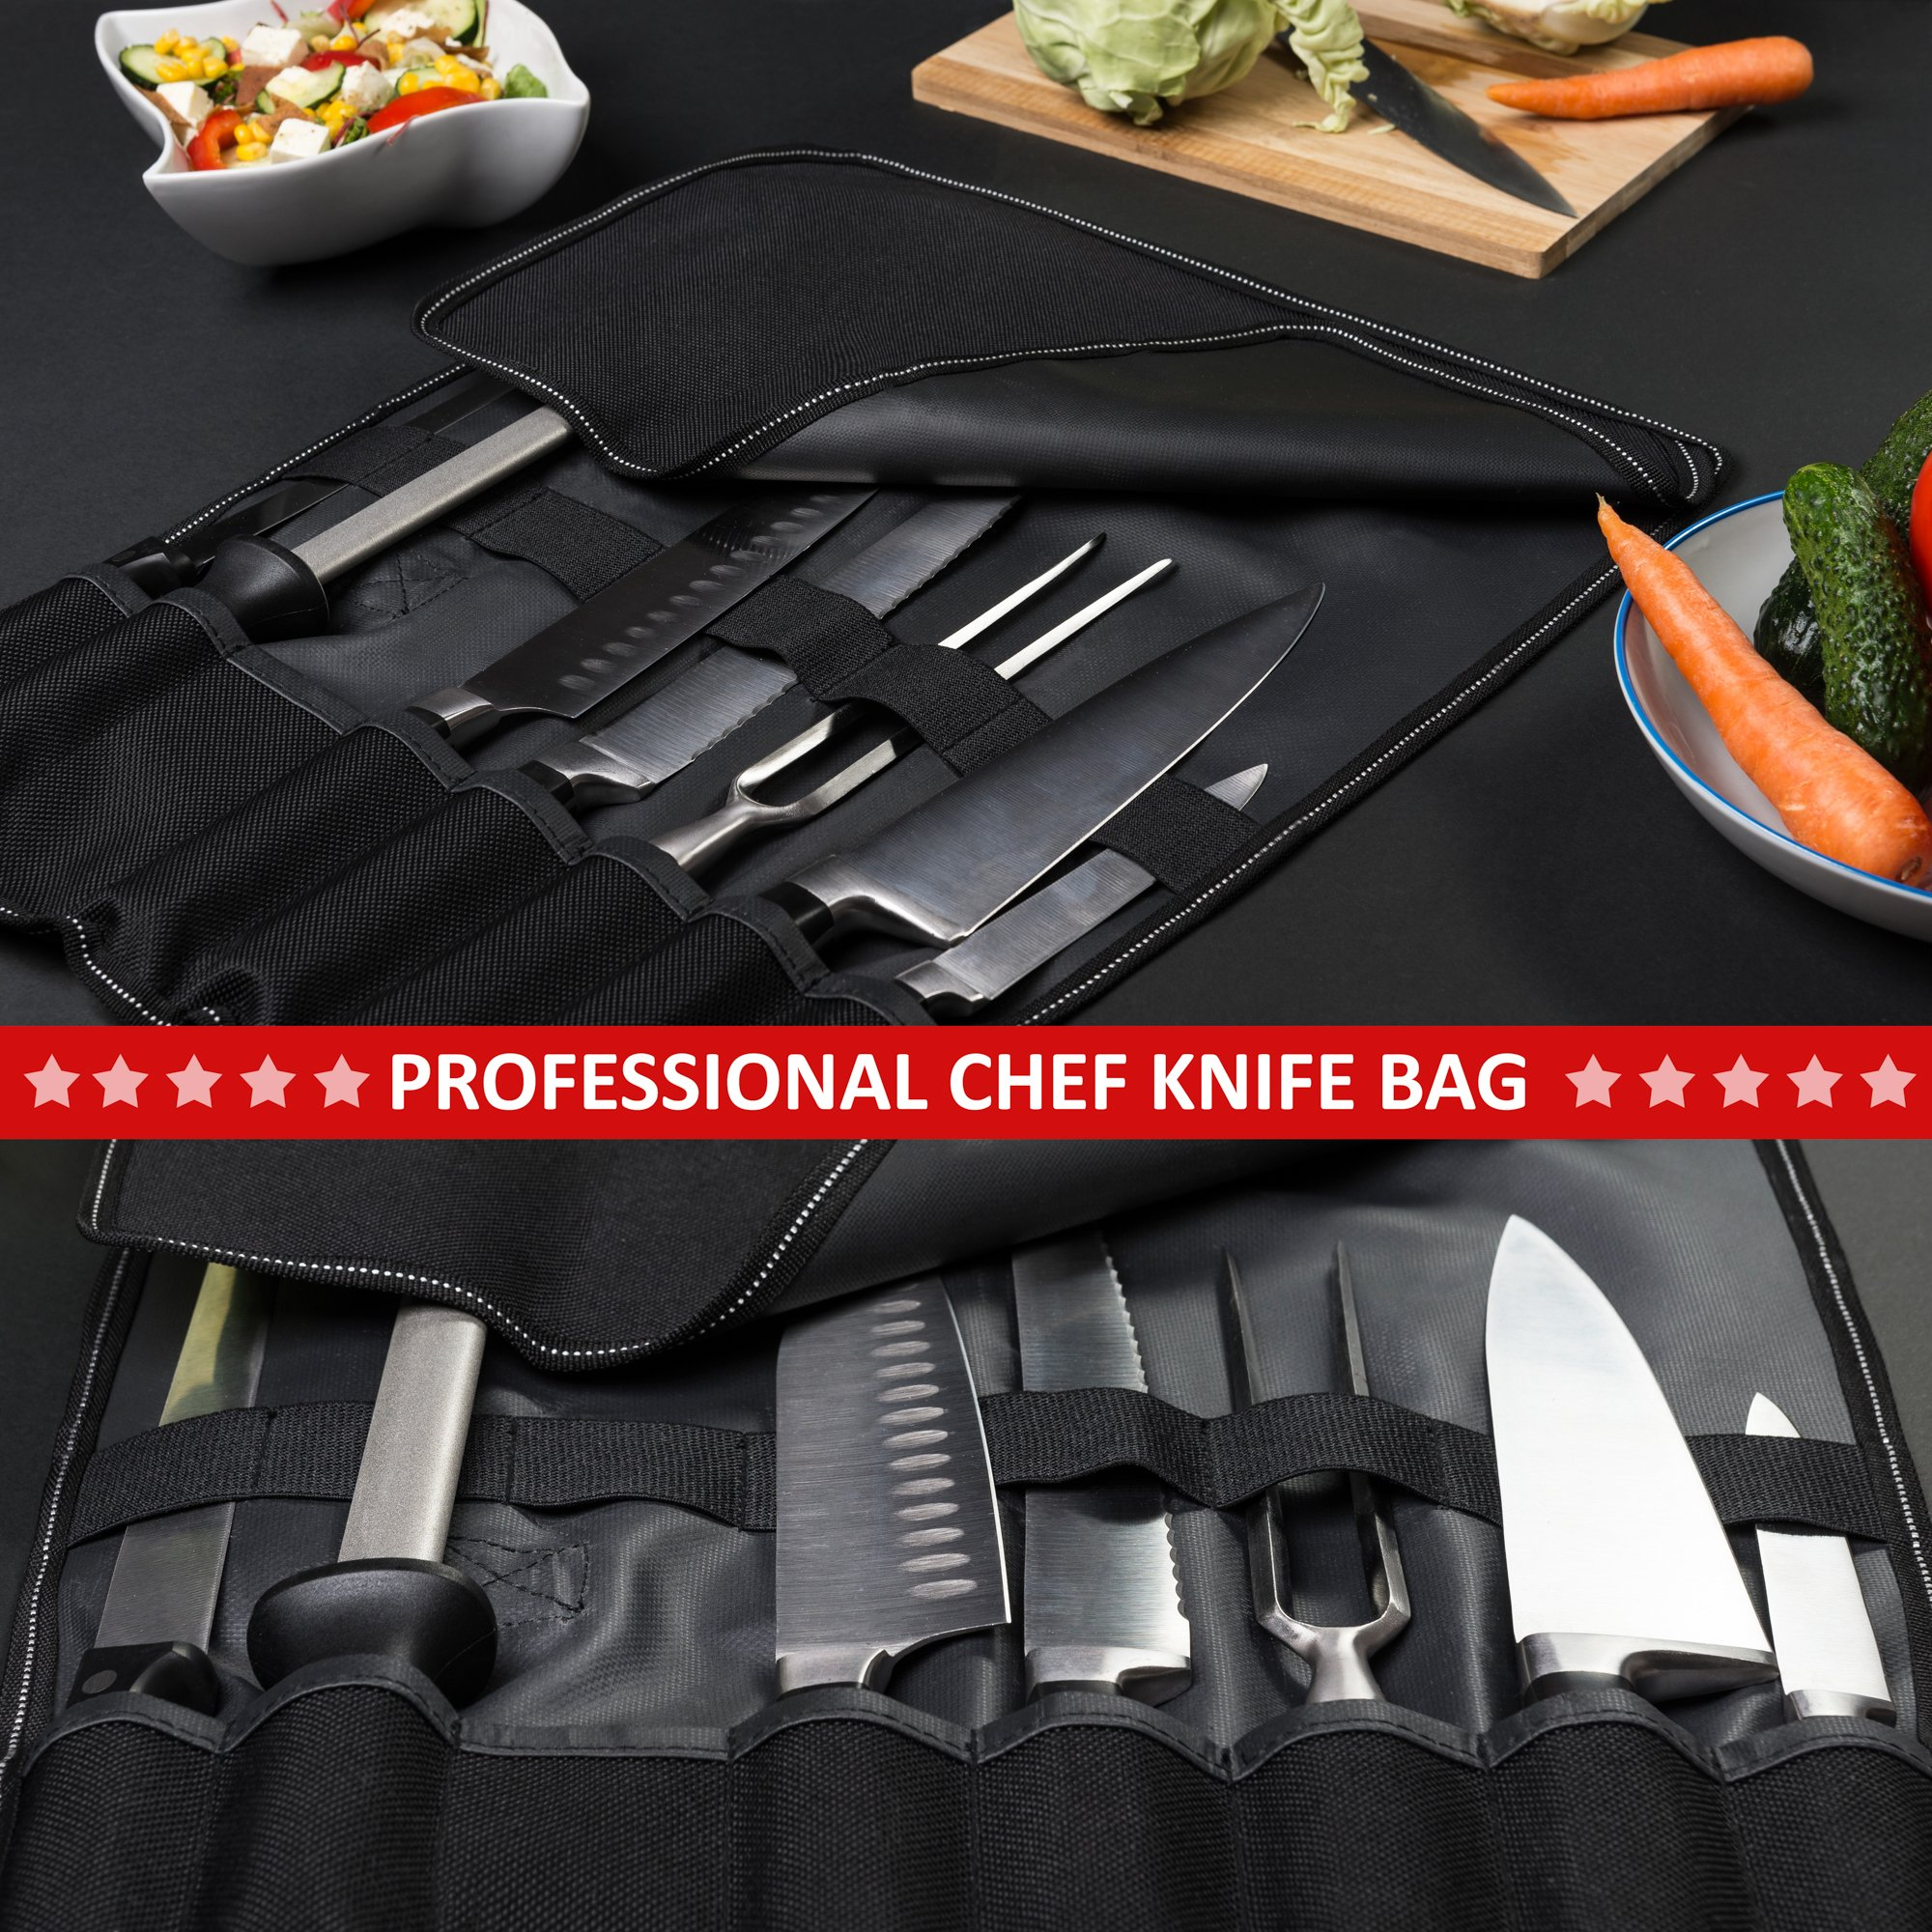 Chef Knife Bag (8 slots) – Durable and Waterproof Culinary Roll Case Utensil With Shoulder Strap and Holder – Knives Organizer For Chefs and Students + eBook Bonus + Extra-Warranty by 1stqual by 1stqual (Image #8)